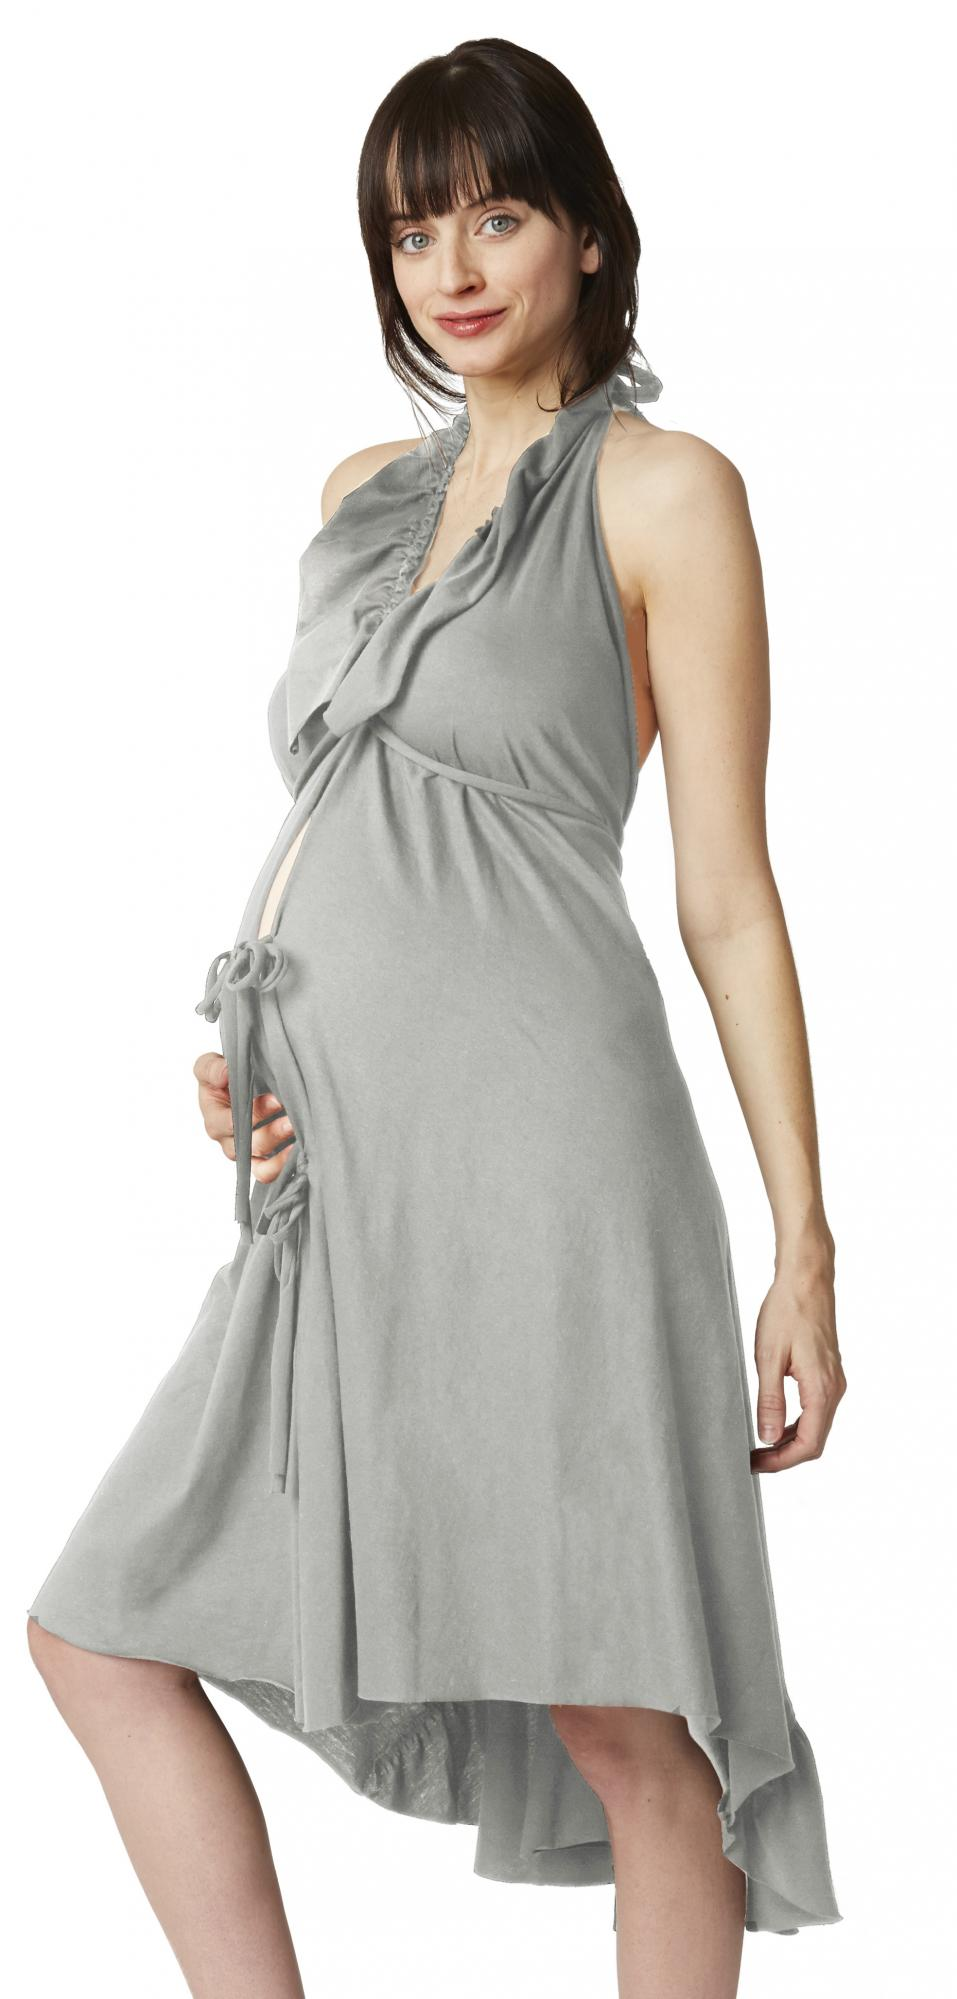 pretty-pushers-ruffle-labor-gown-moonlight-grey-side-2.jpg